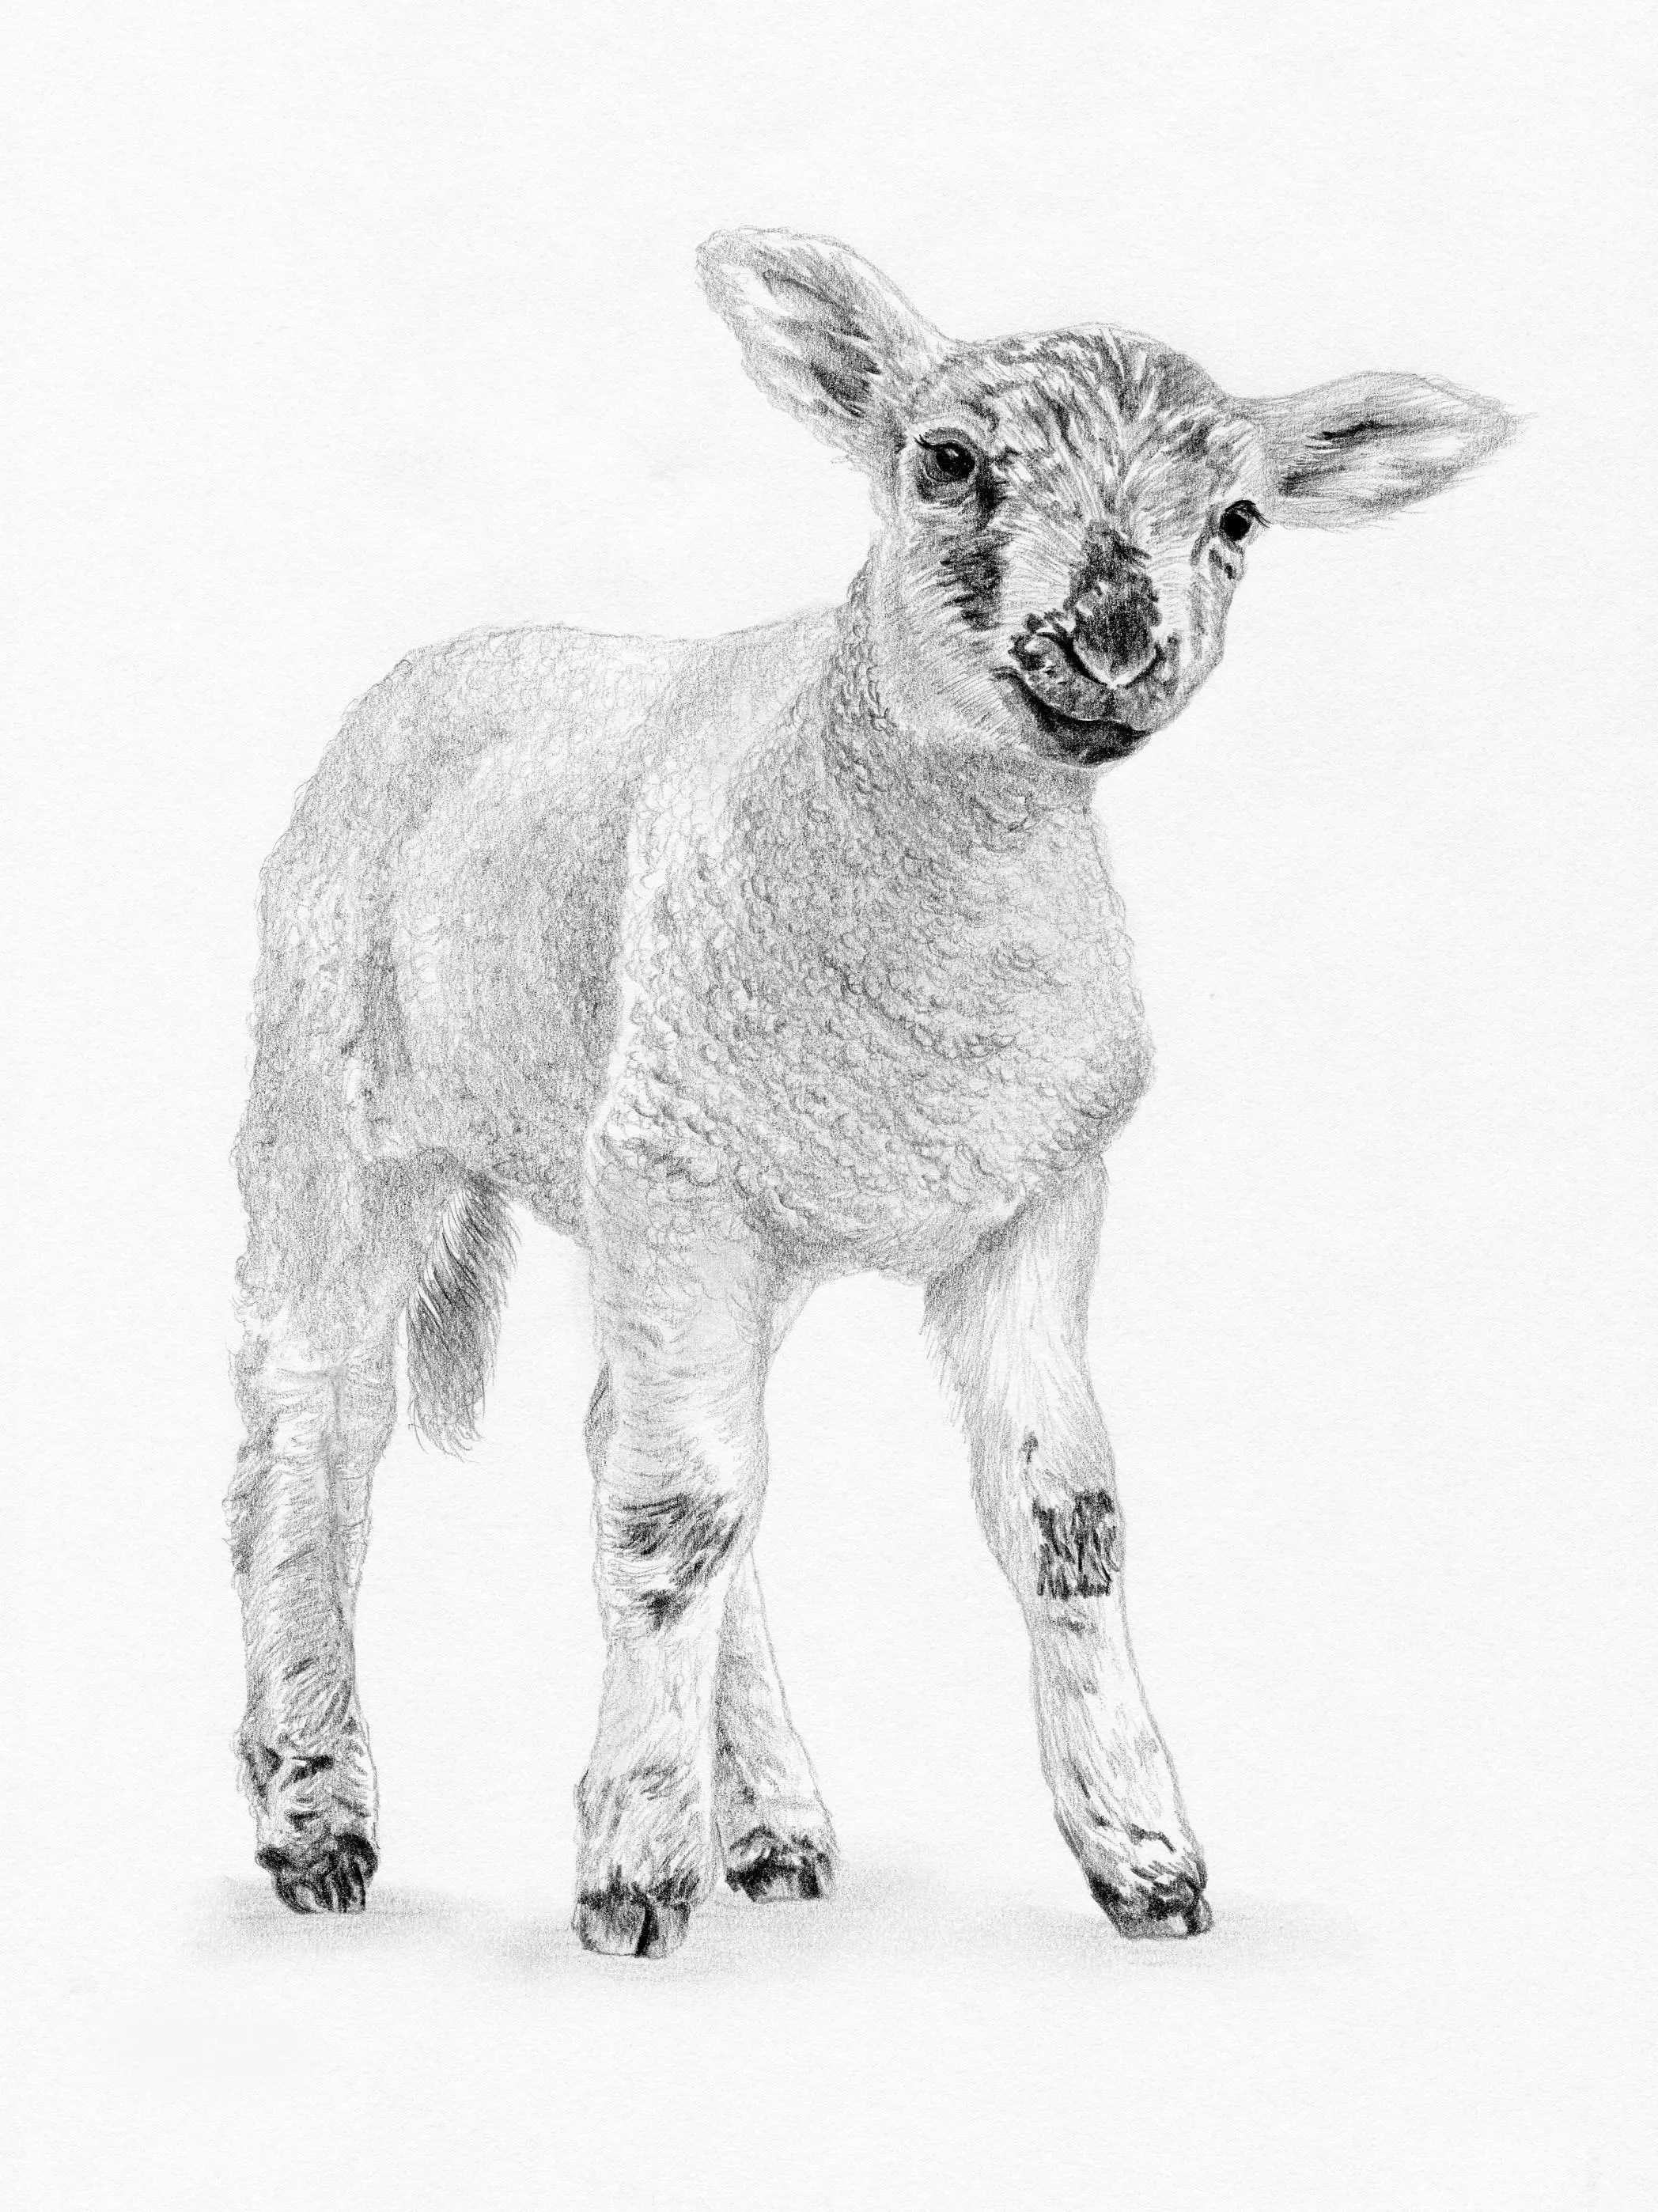 Baby Lamb Drawing Lamb Sheep Baby Art Pencil Drawing Print Signed By Uk